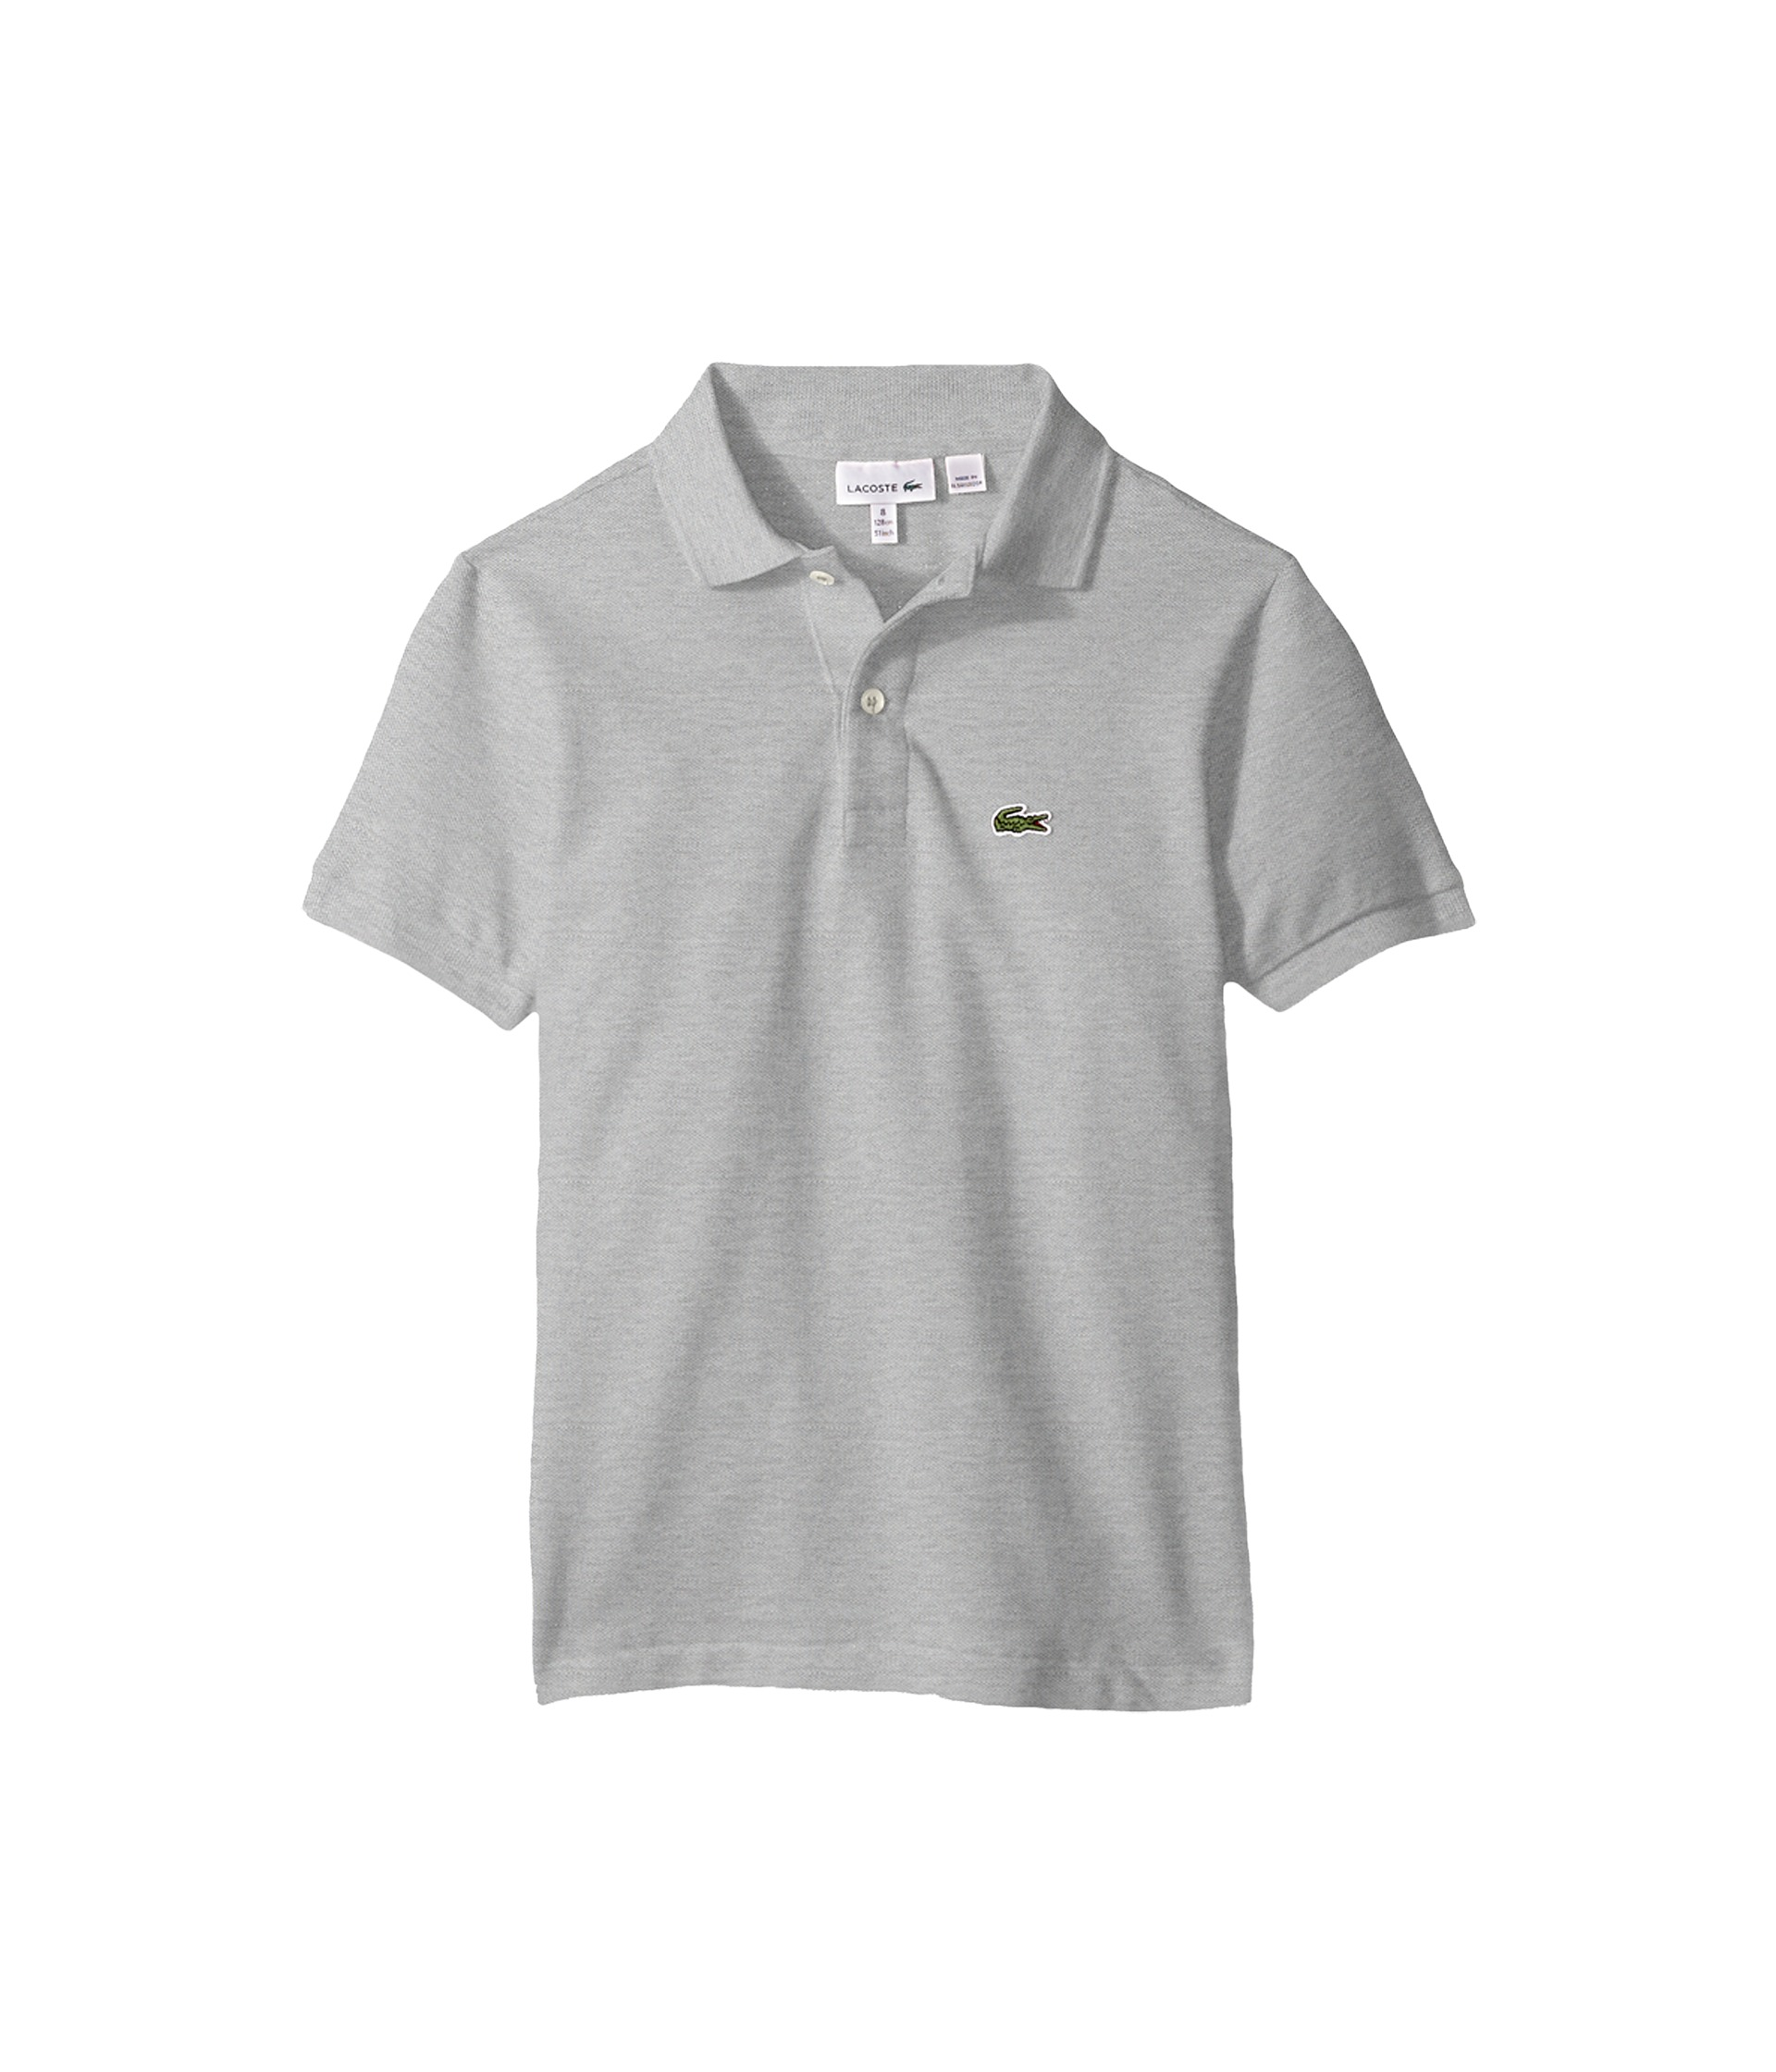 Lacoste kids l1812 short sleeve classic pique polo for Lacoste size 4 polo shirt